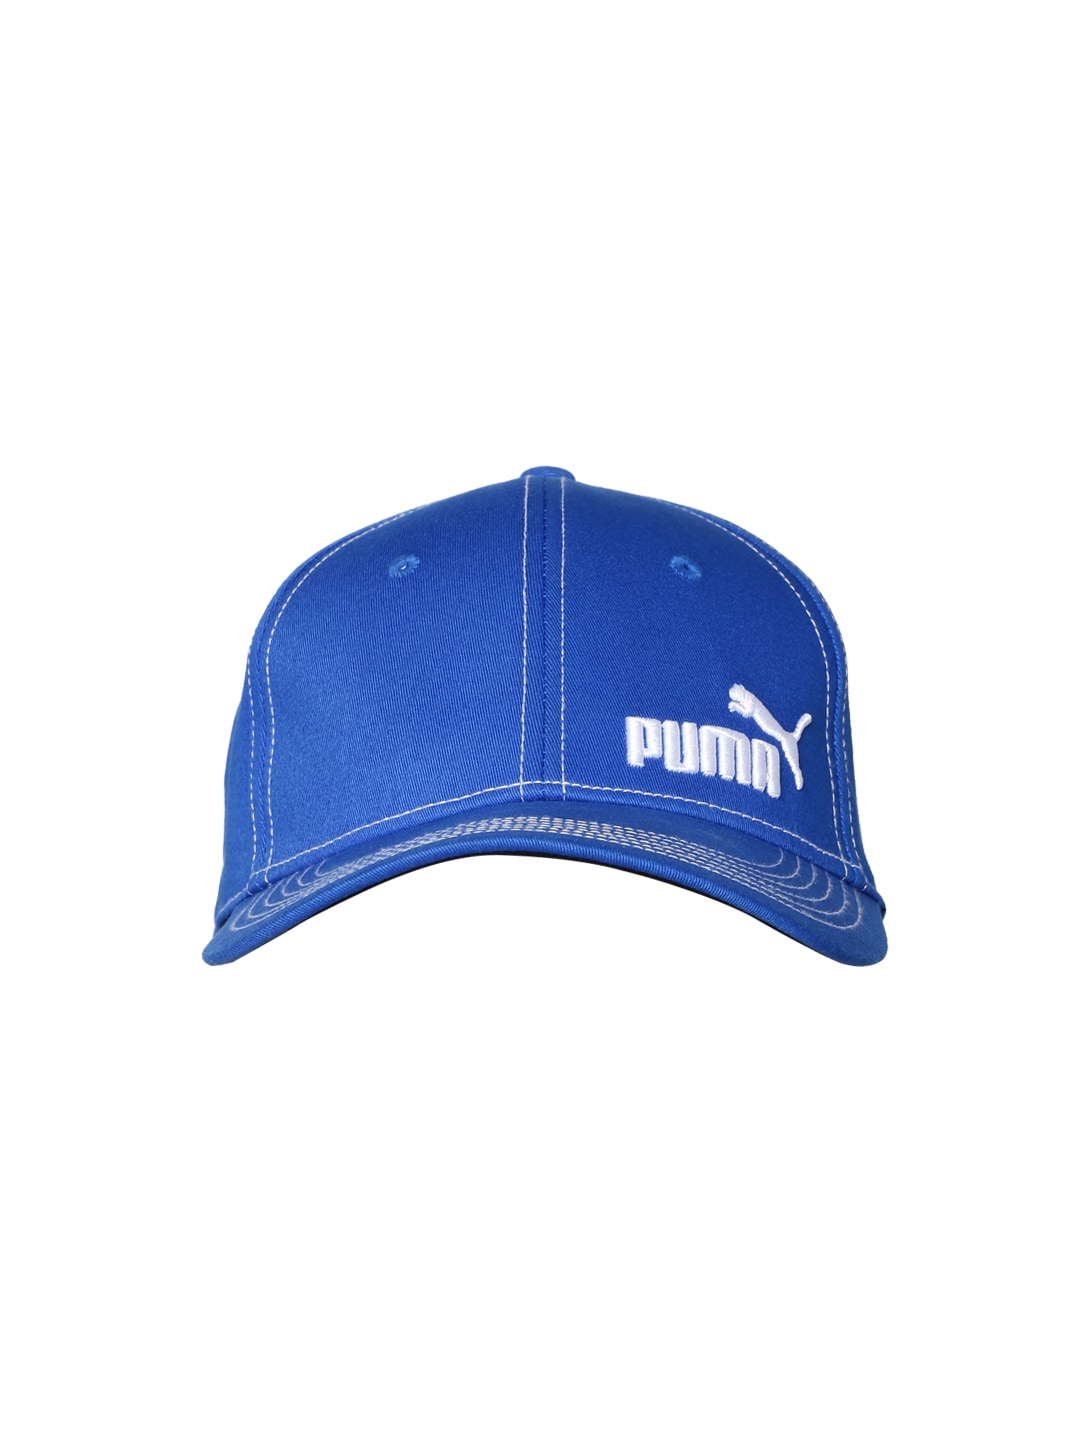 7d38d1bfdae Puma Unisex Blue Caps - Buy Puma Unisex Blue Caps online in India